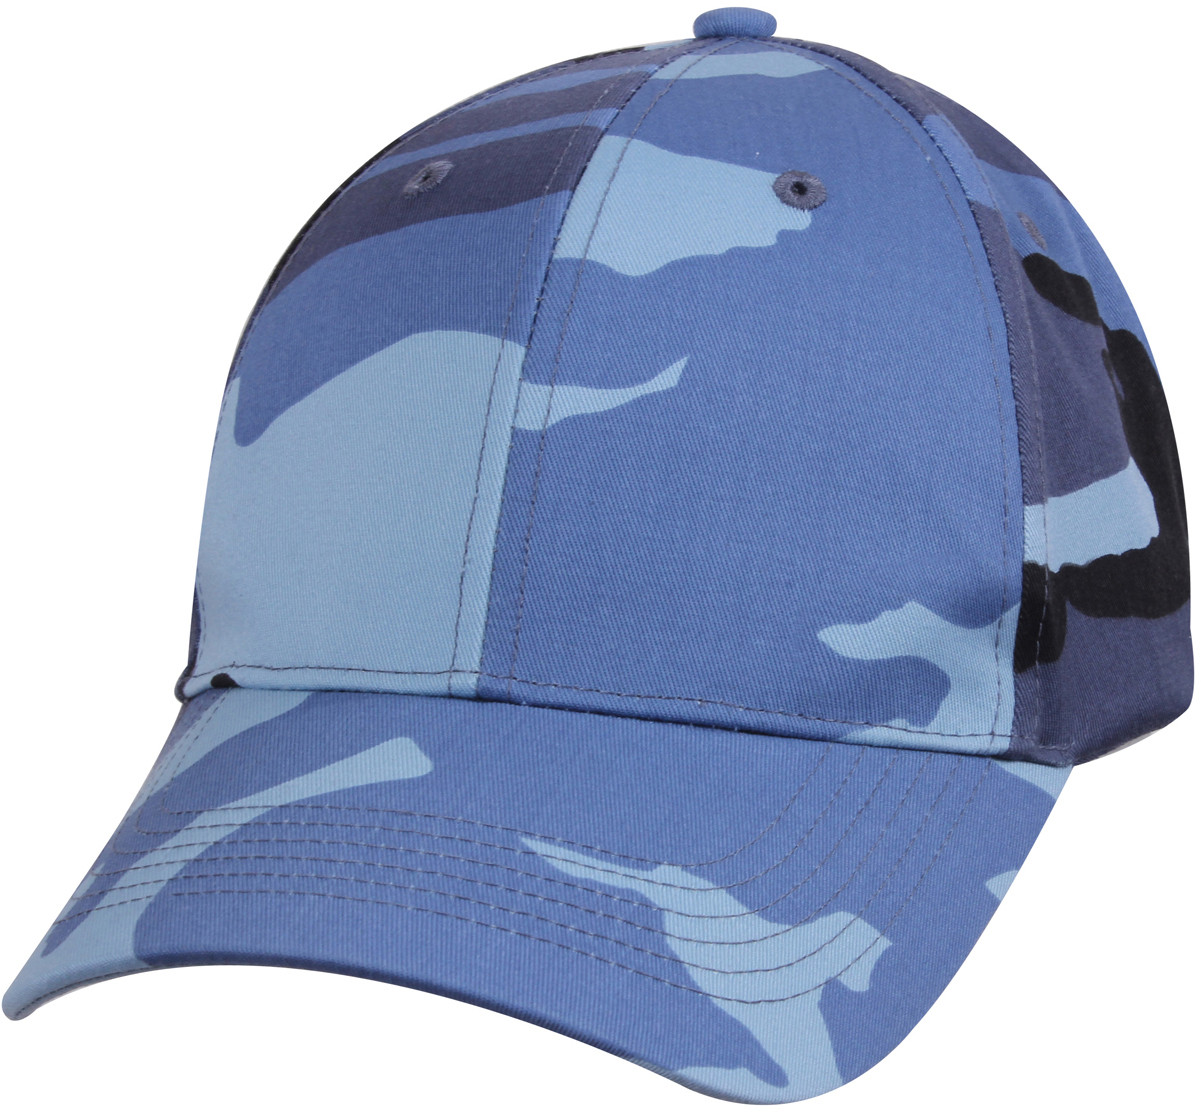 More Views. Sky Blue Camouflage Supreme Military Low Profile Baseball Cap 0e96f94202c